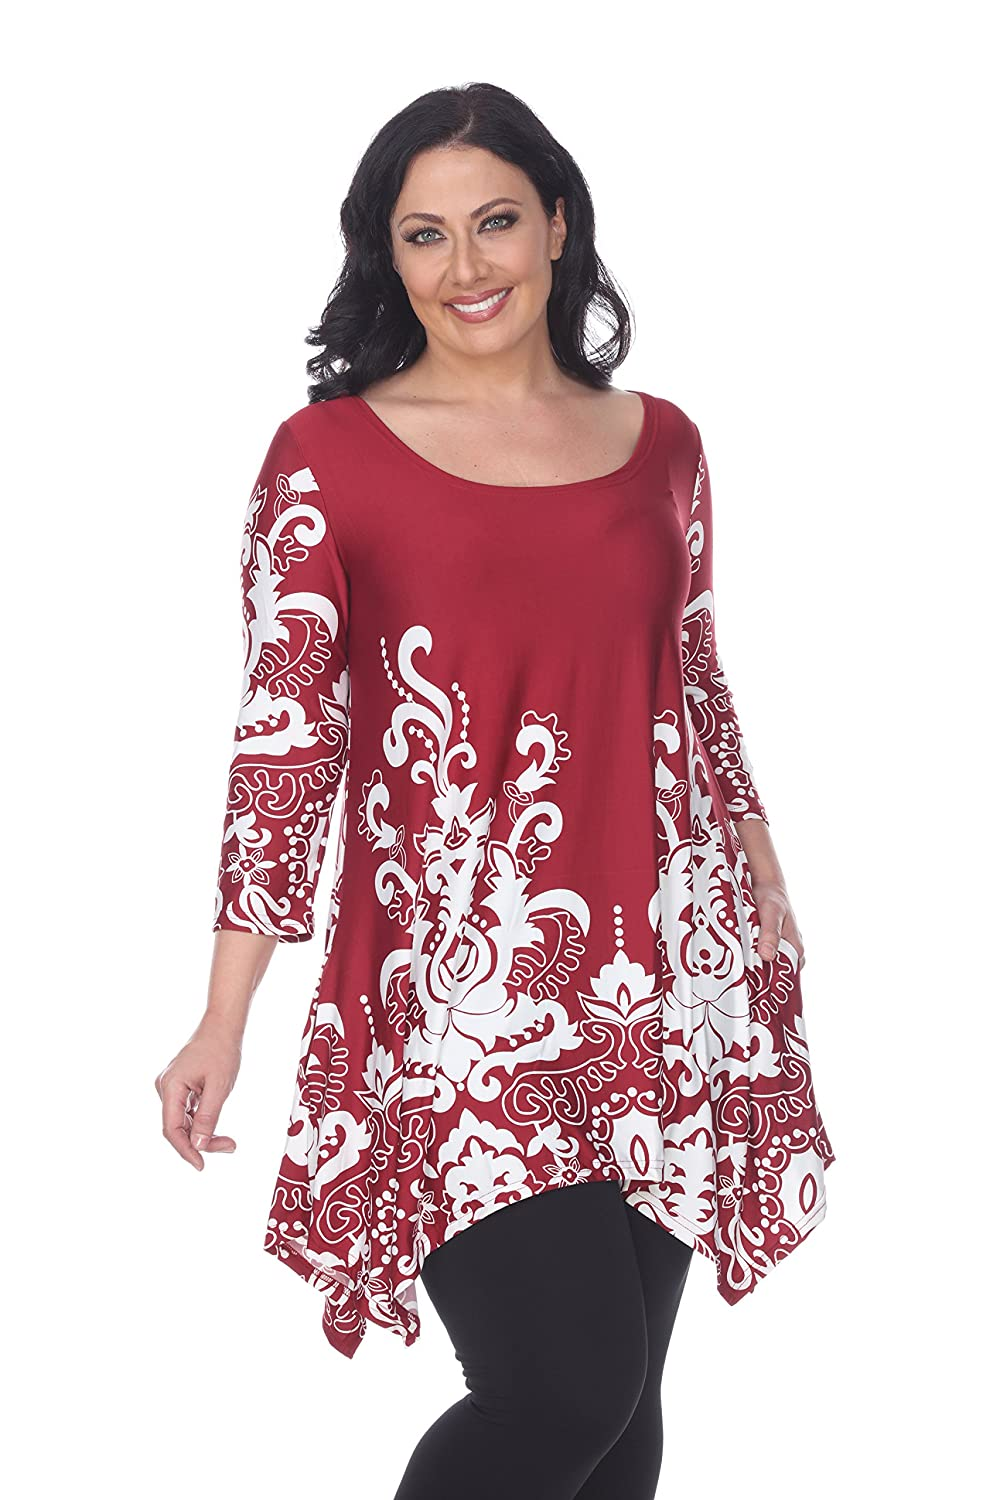 eefbb542237 White Mark Women's Plus Size Yanette Paisley Floral Tunic Top at Amazon  Women's Clothing store: